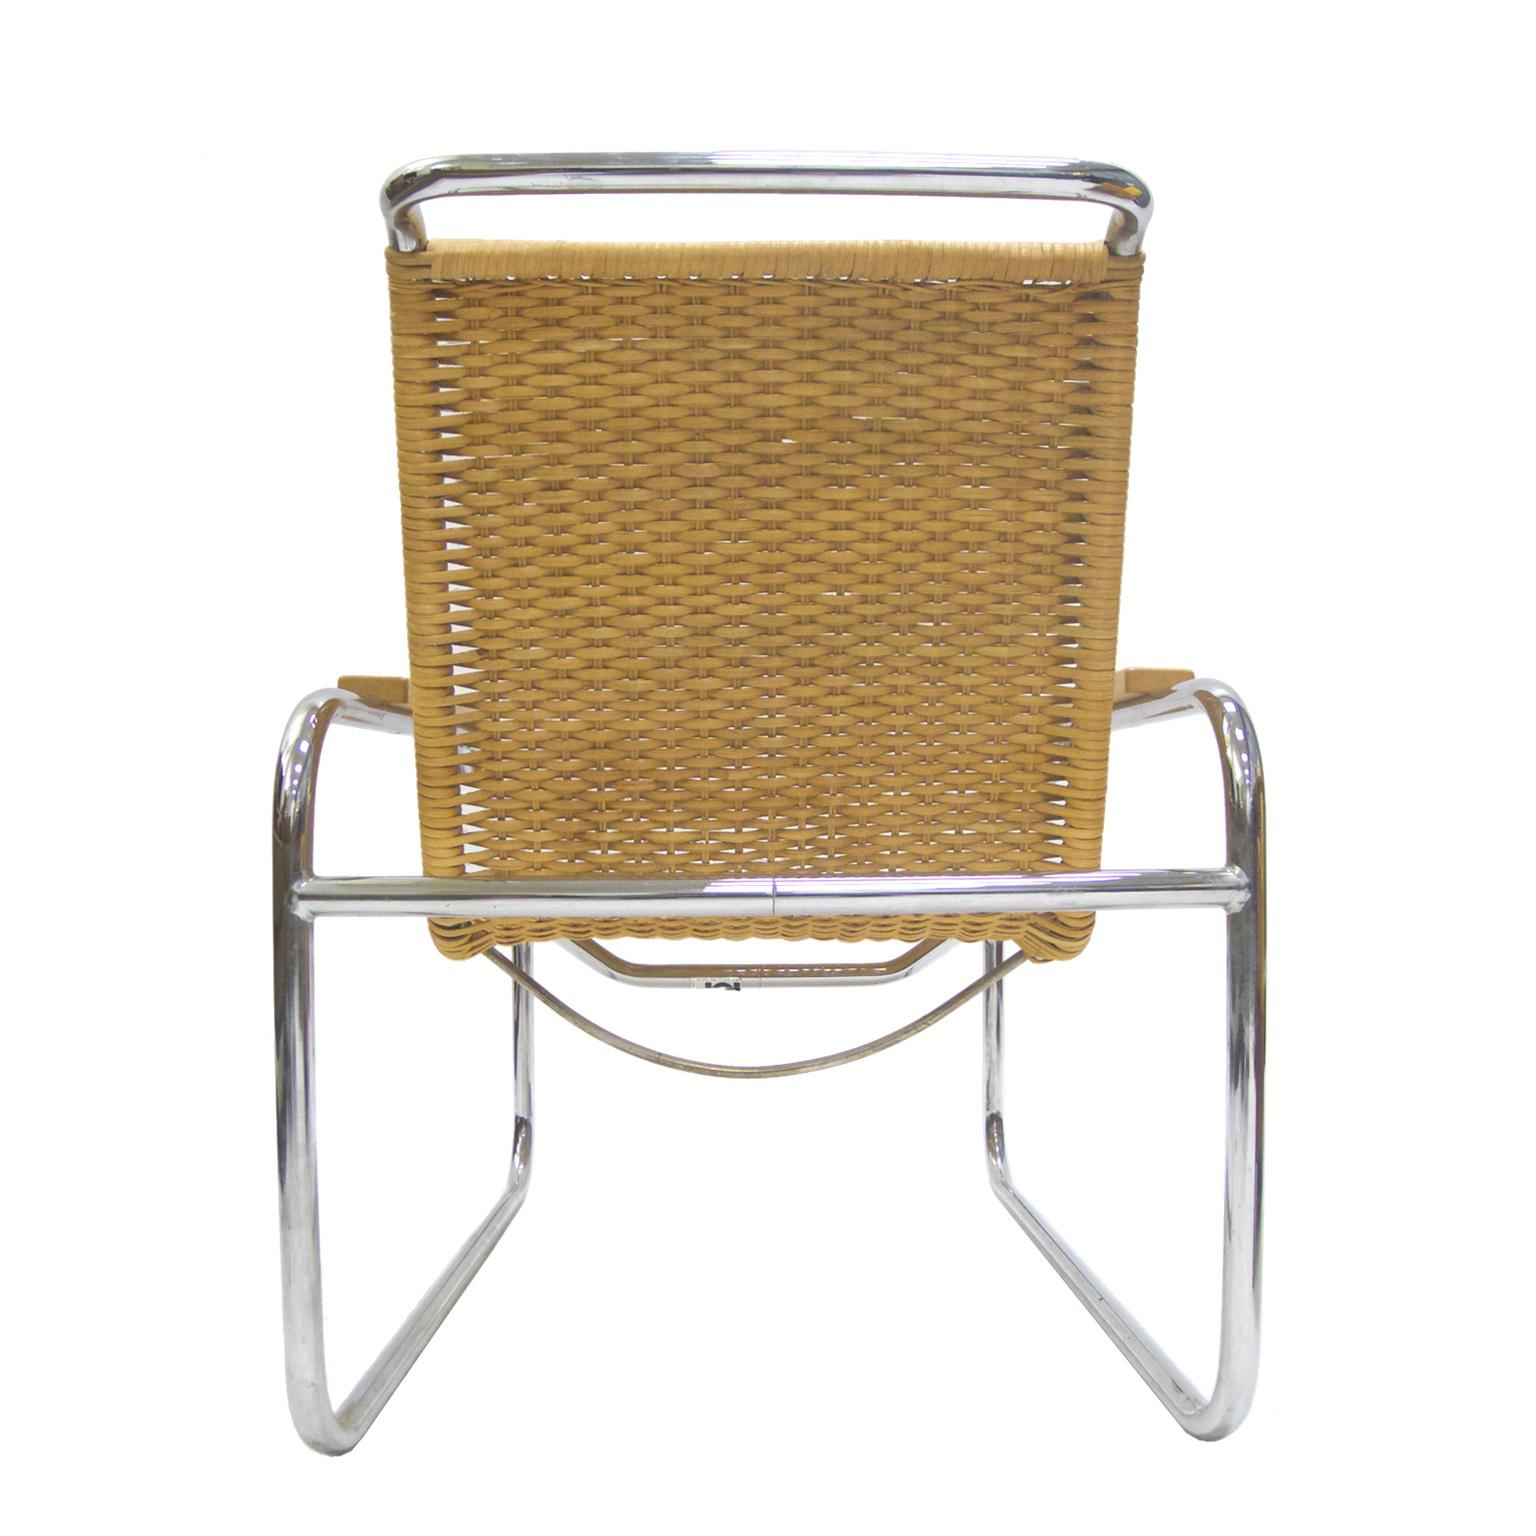 Marcel Breuer B 35 Lounge Chair For Thonet In Chrome And Woven Rattan    Image 5